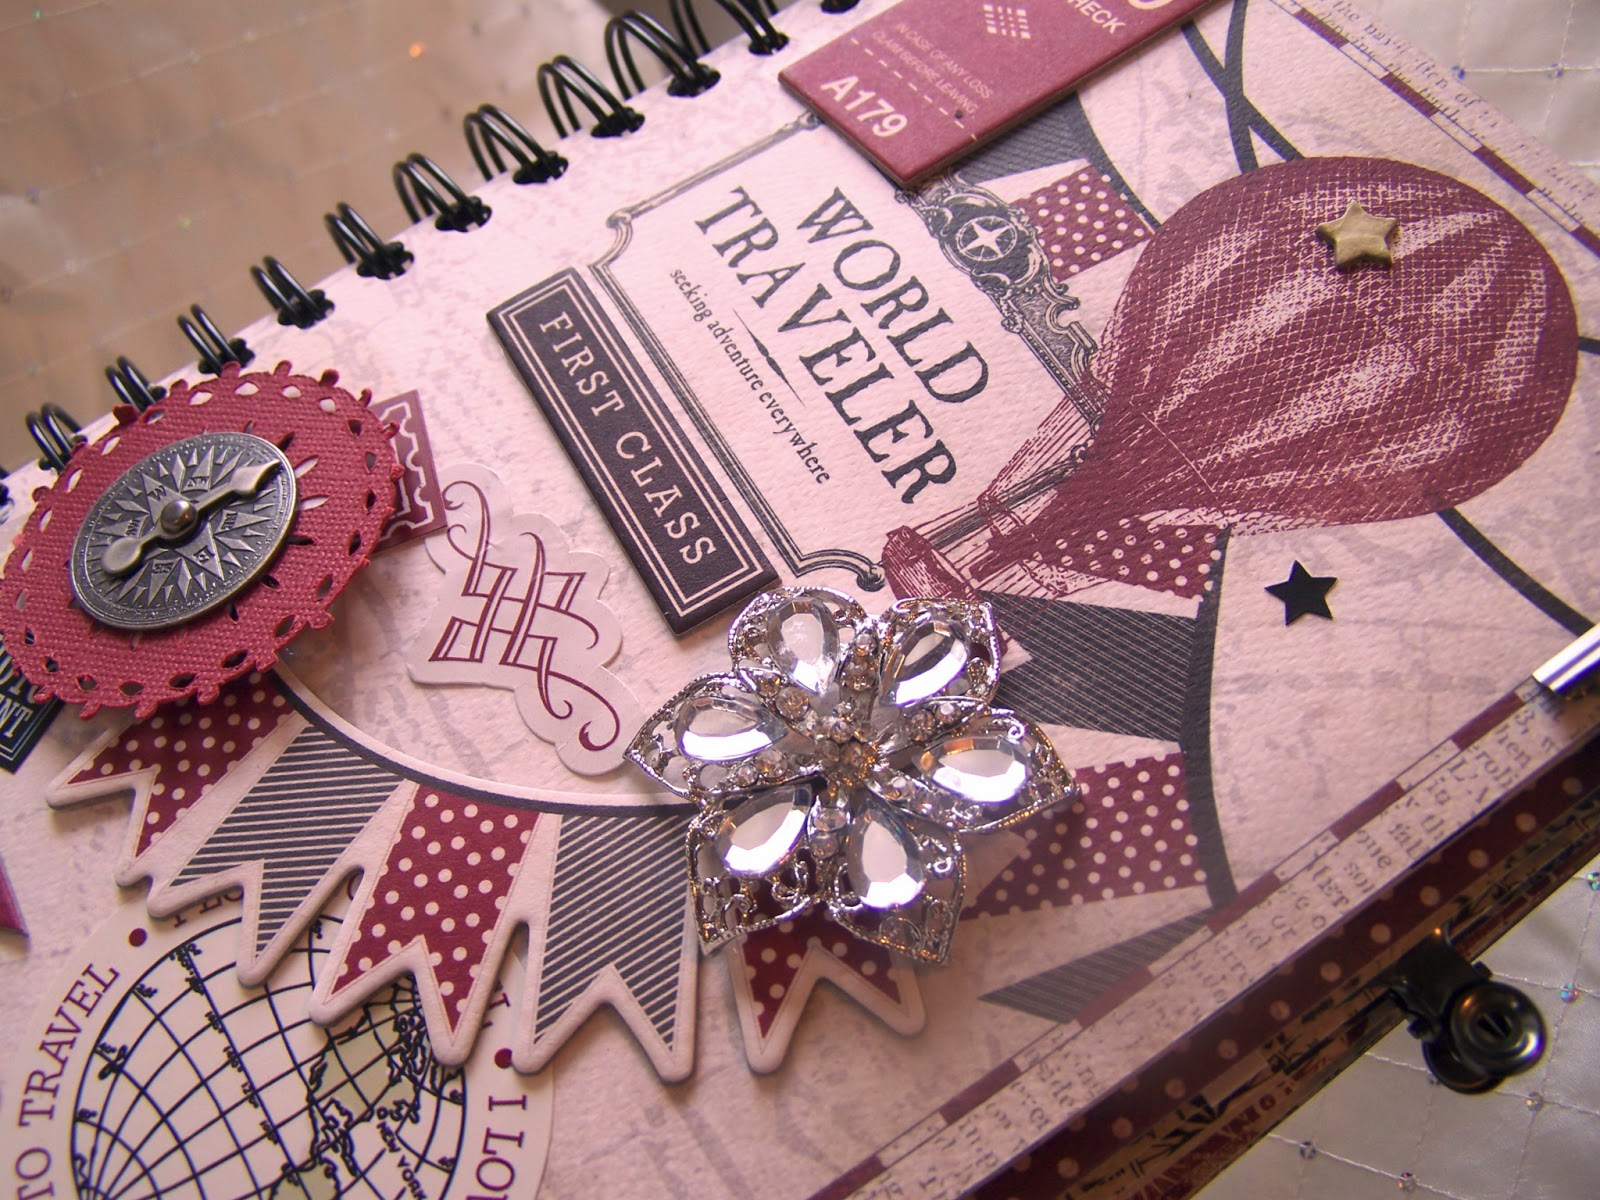 How to scrapbook journal - Front Cover